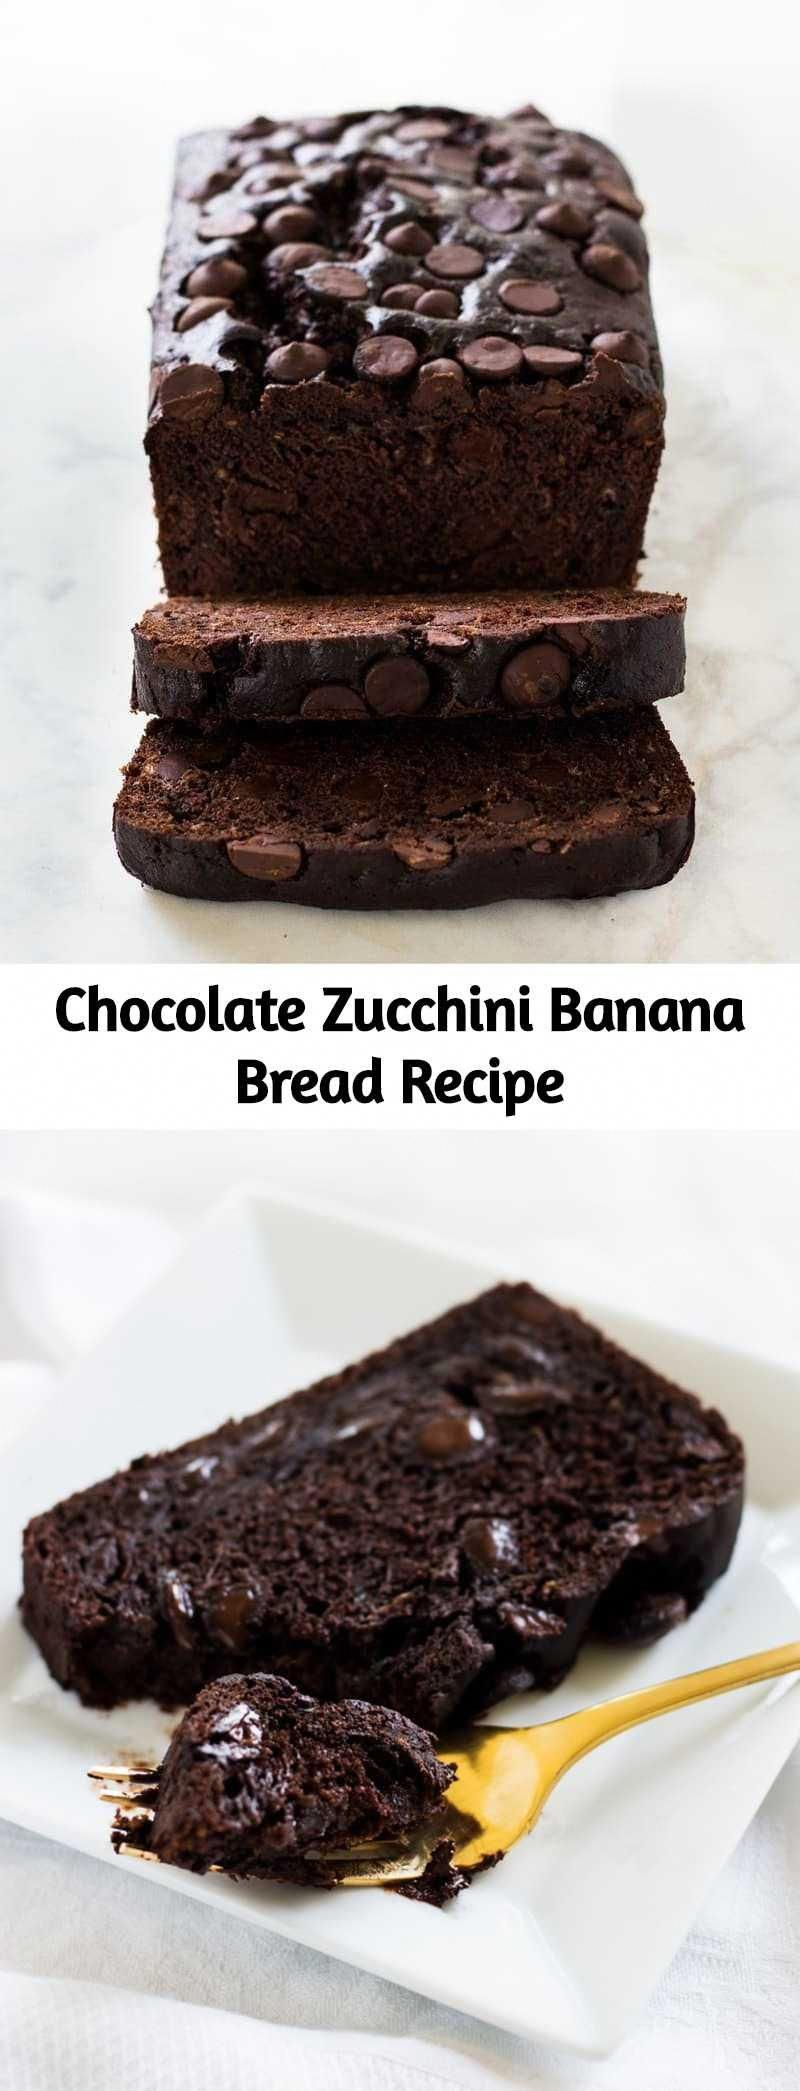 chocolate zucchini banana bread is dense and moist filled